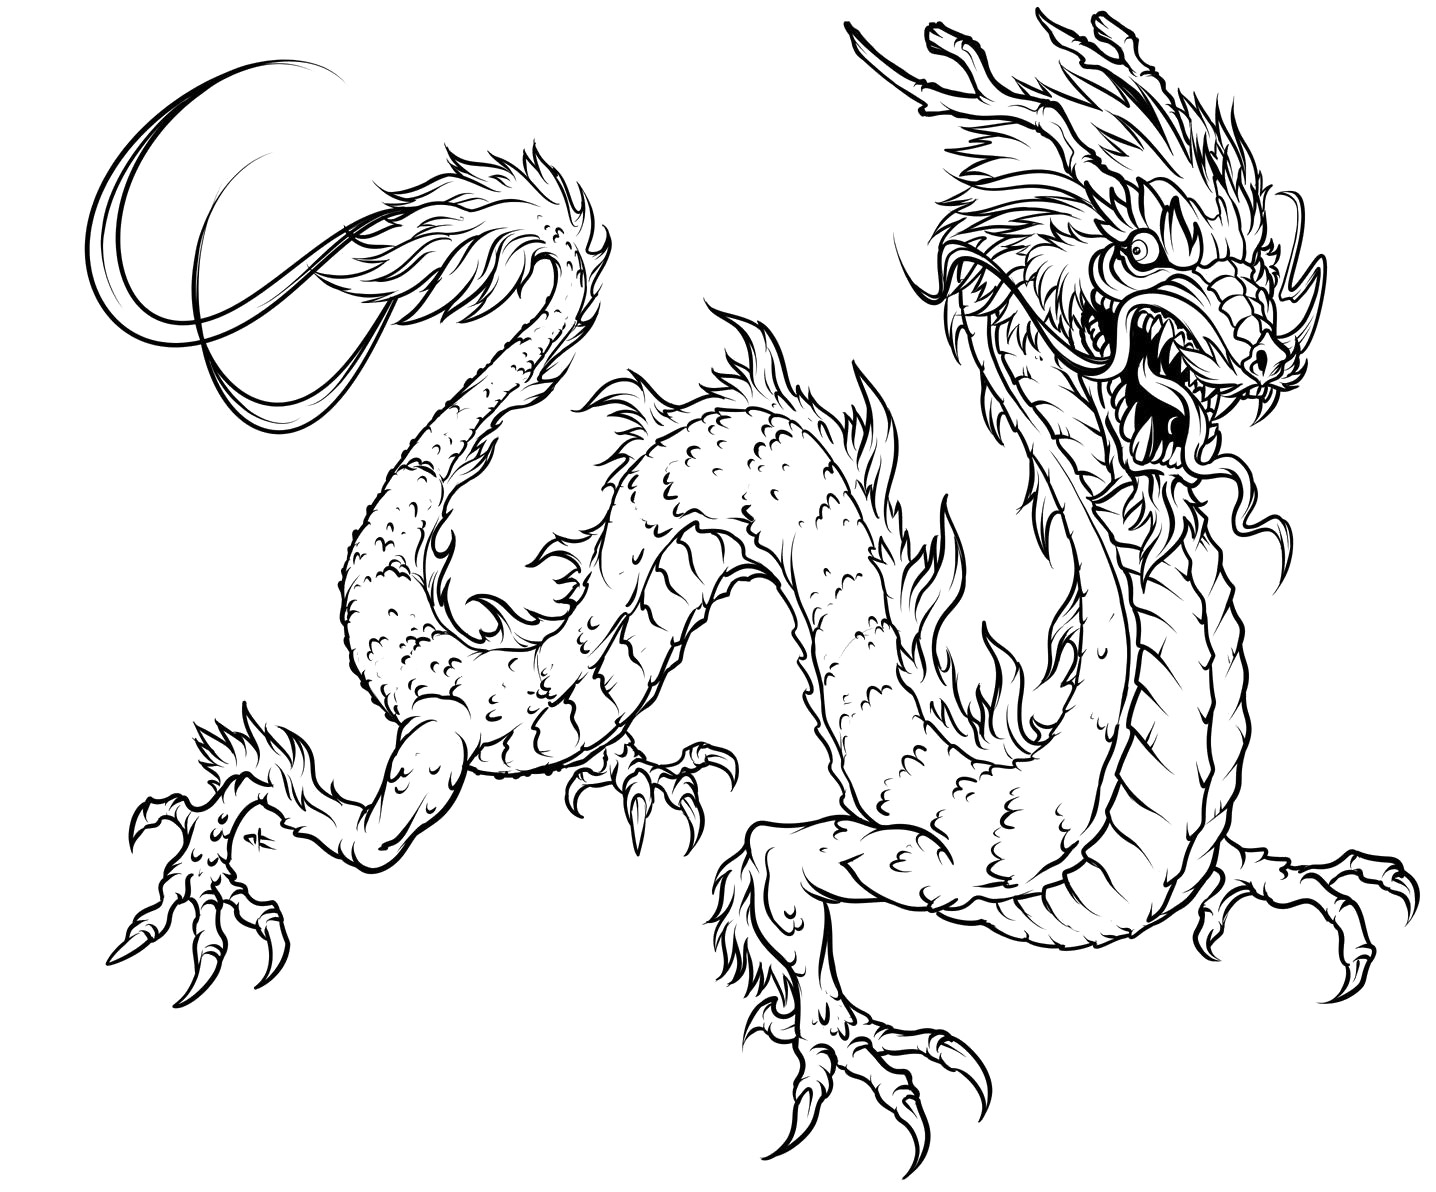 1436x1192 Sampler Colouring Pages Of Dragons Dragon Colo